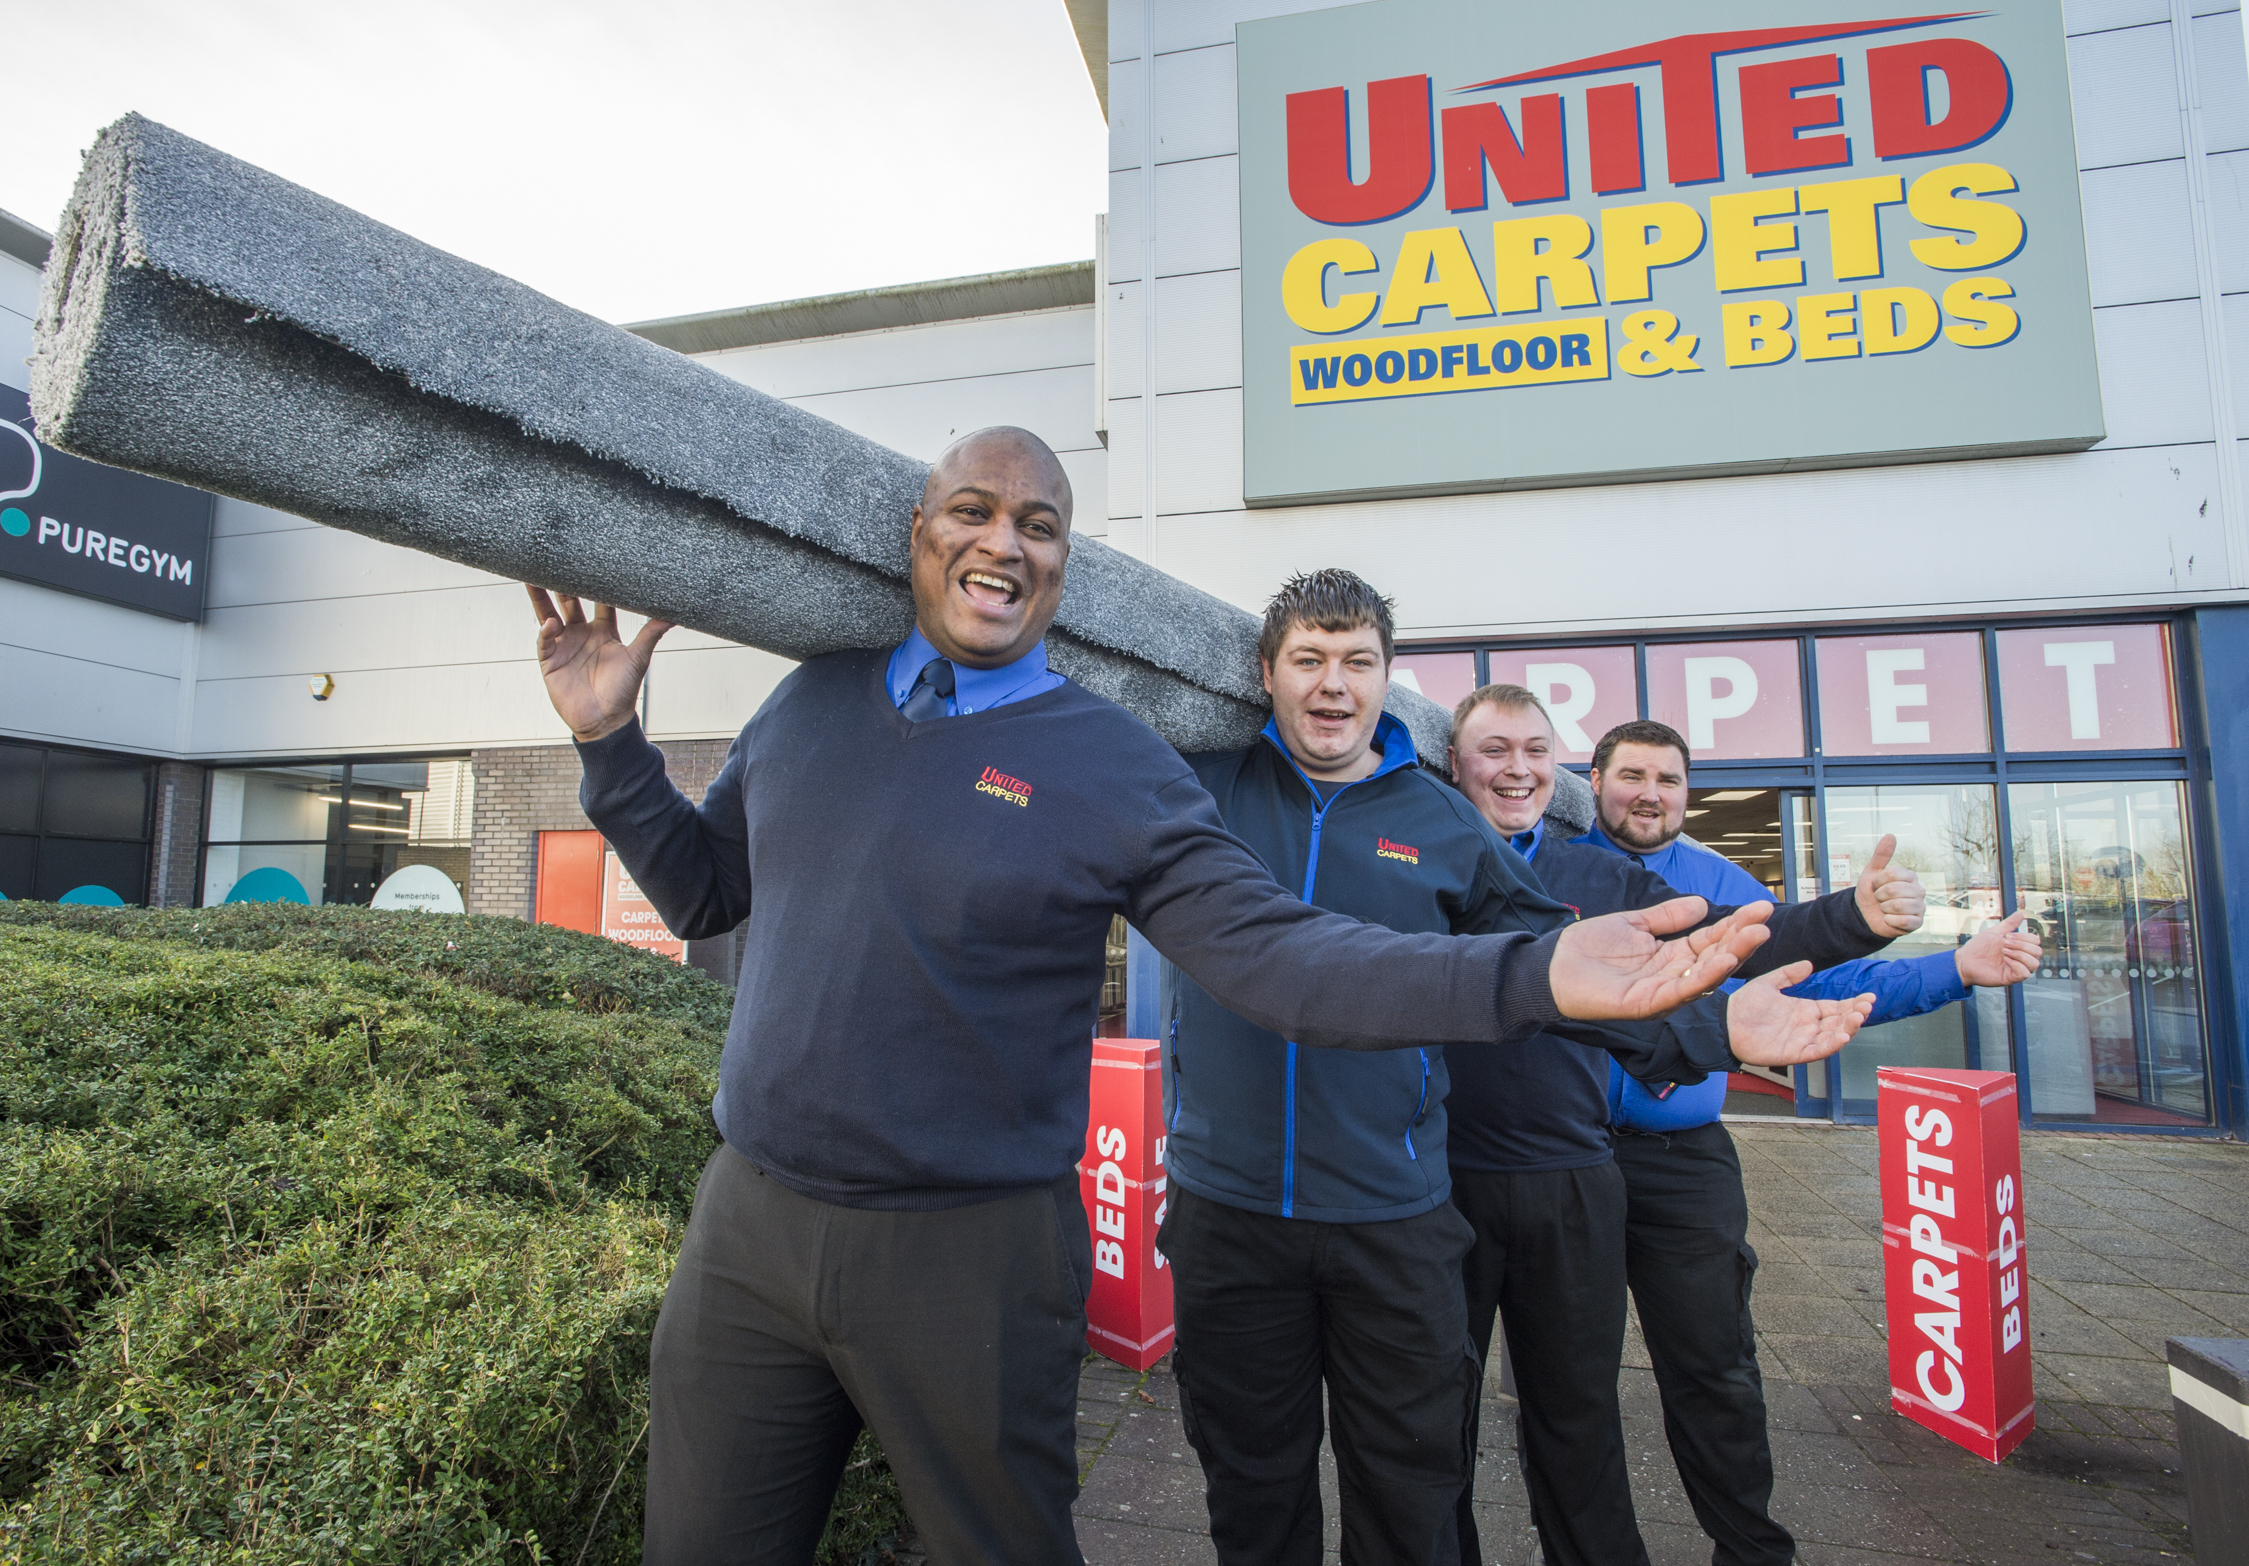 PR Photography in Bristol for United Carpets